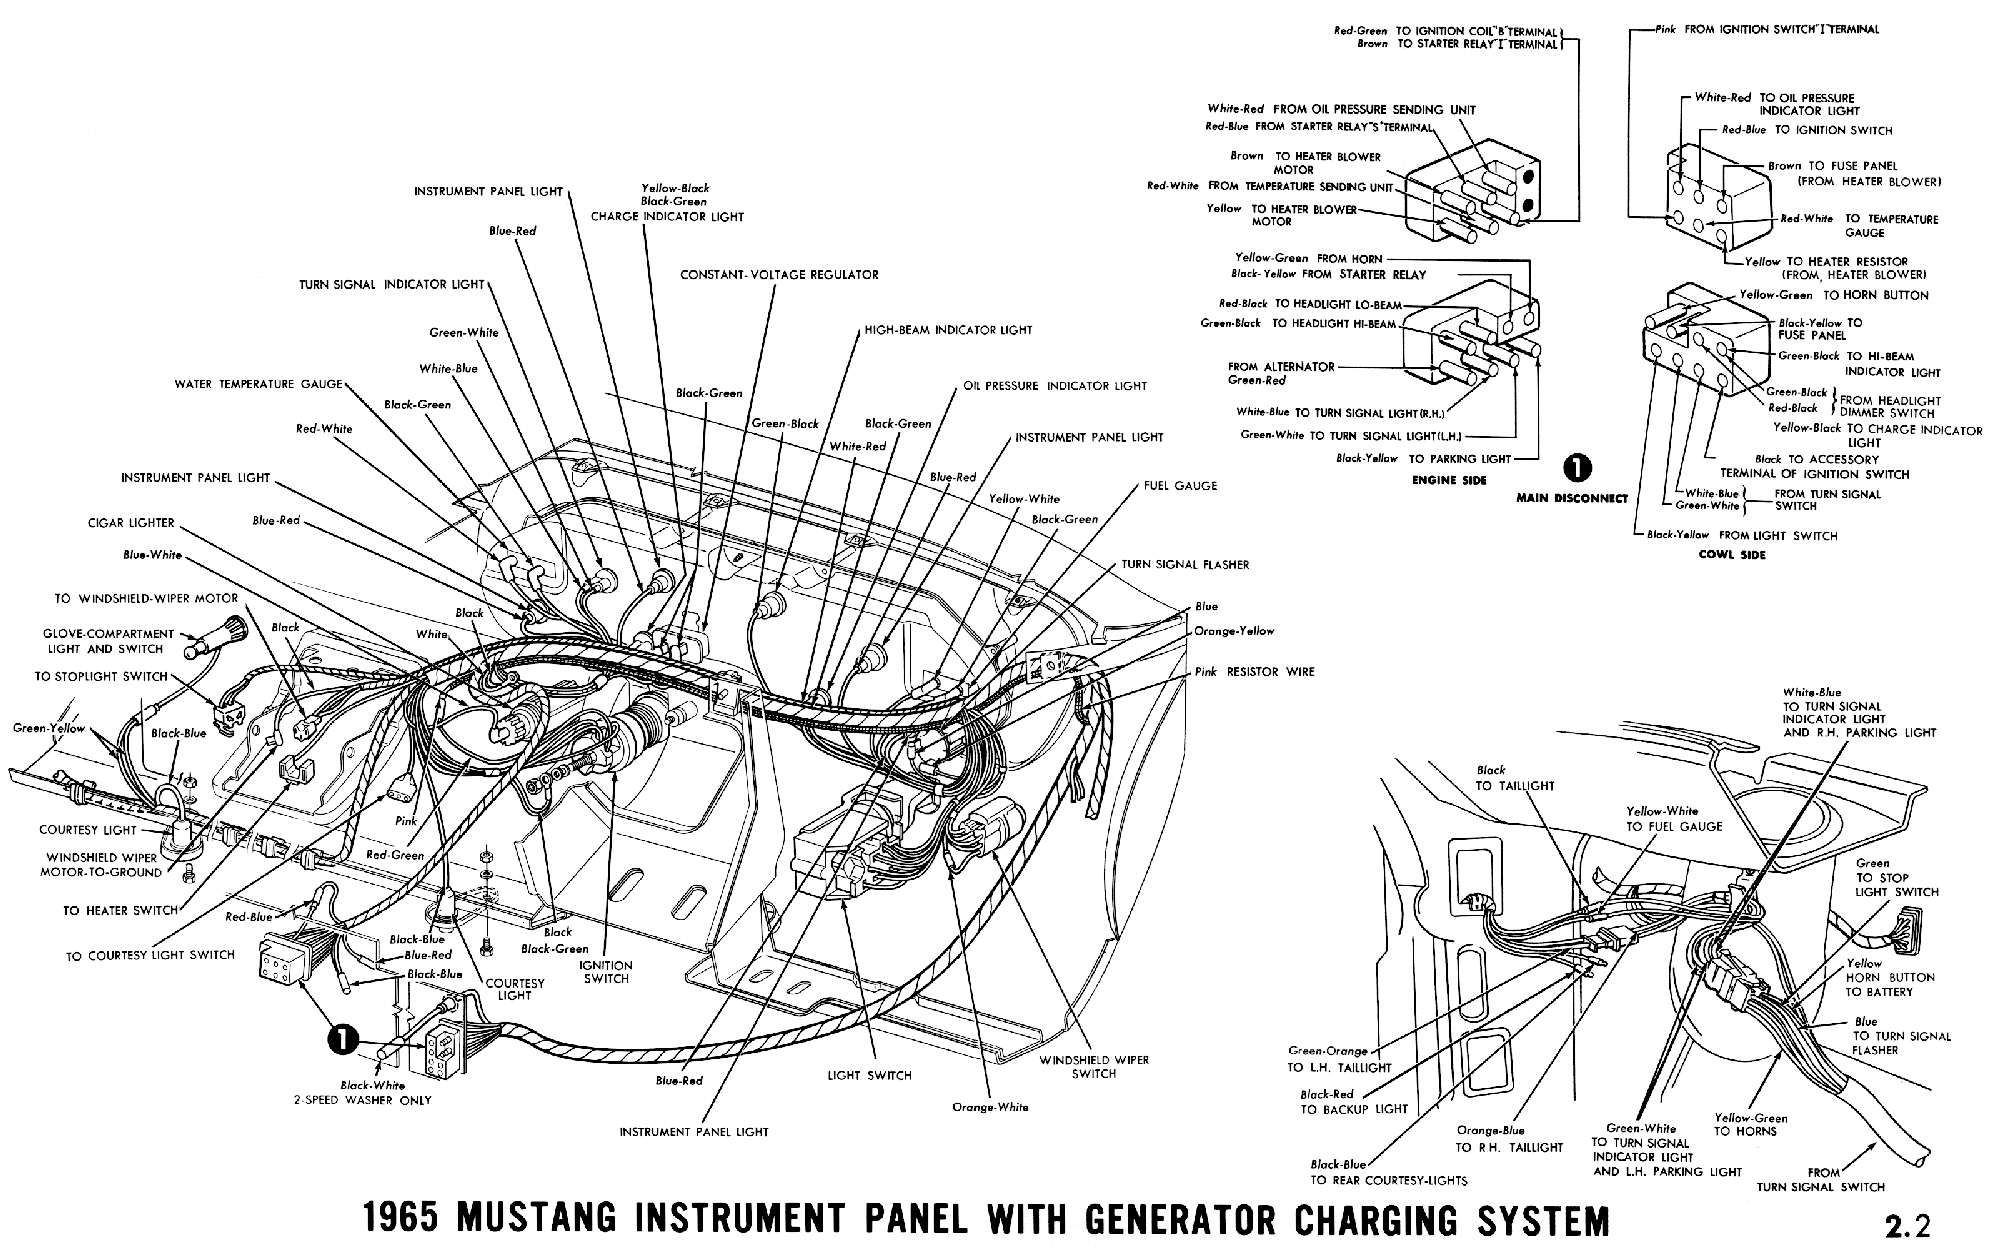 1965 mustang voltage regulator wiring diagram together with hot rod